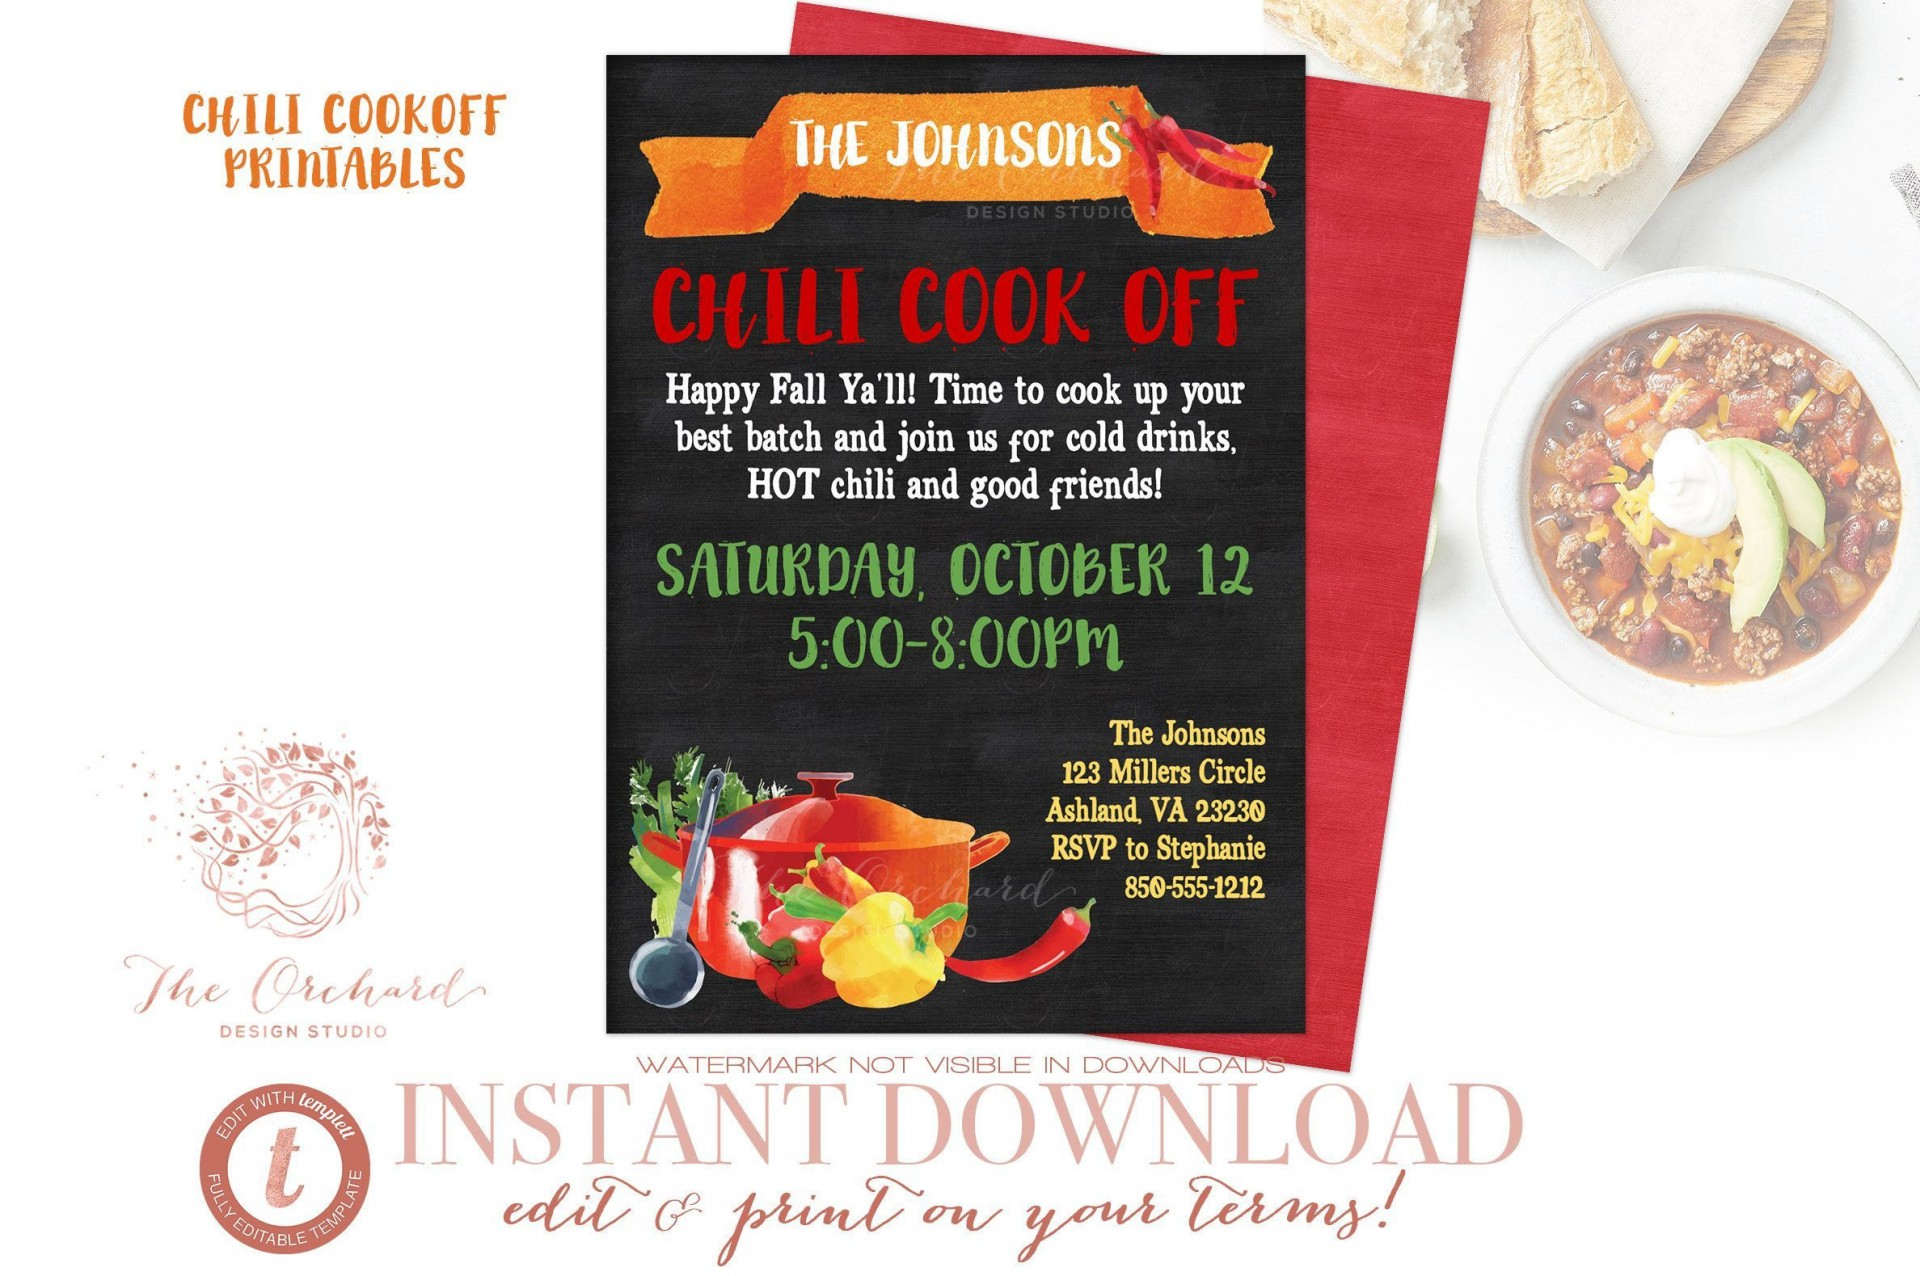 005 Impressive Chili Cook Off Flyer Template Highest Quality  Halloween Office Powerpoint1920